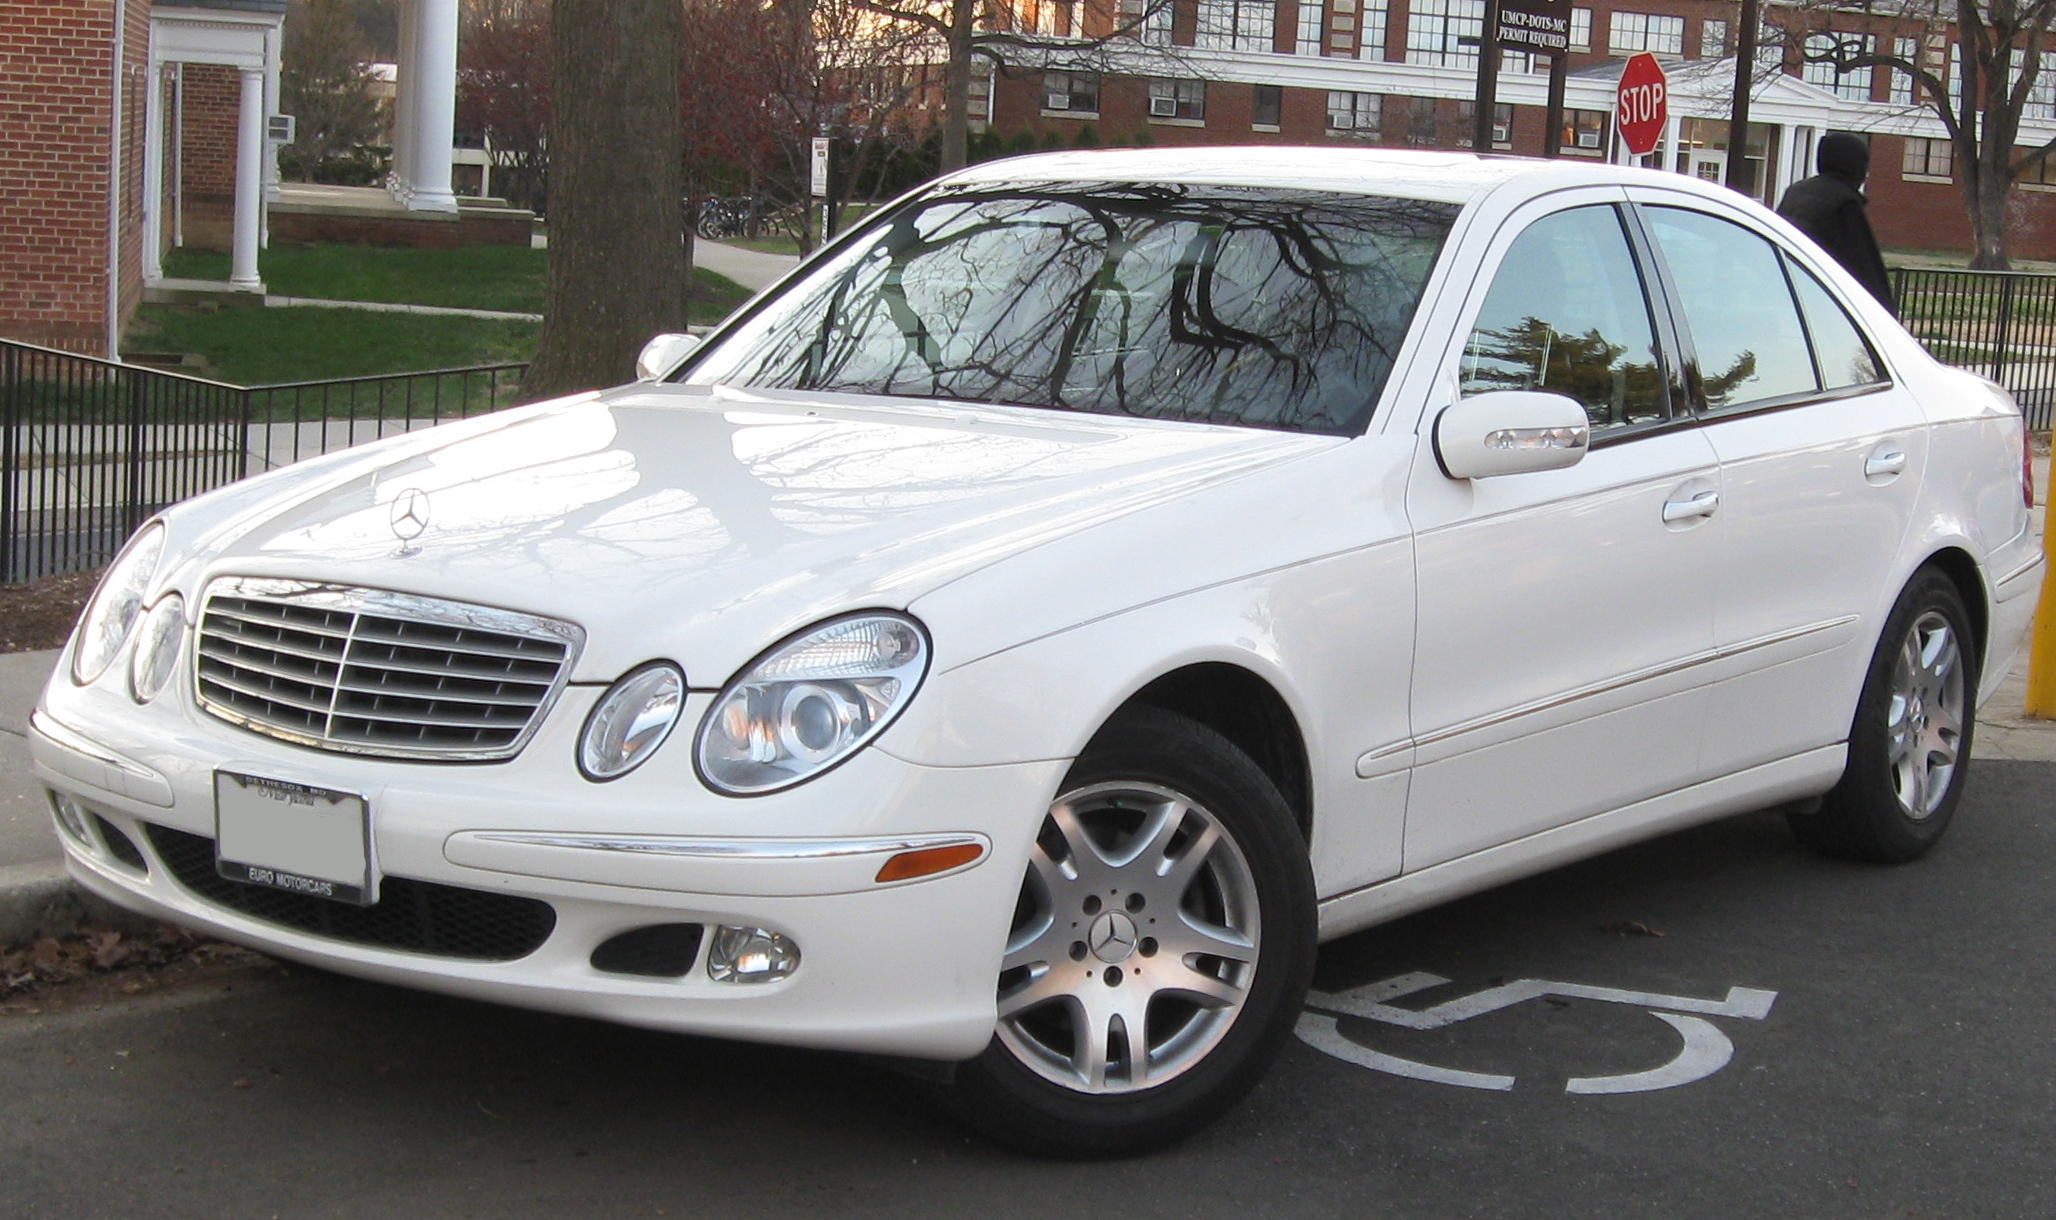 Description Mercedes-Benz E320 2 -- 12-17-2009.jpg